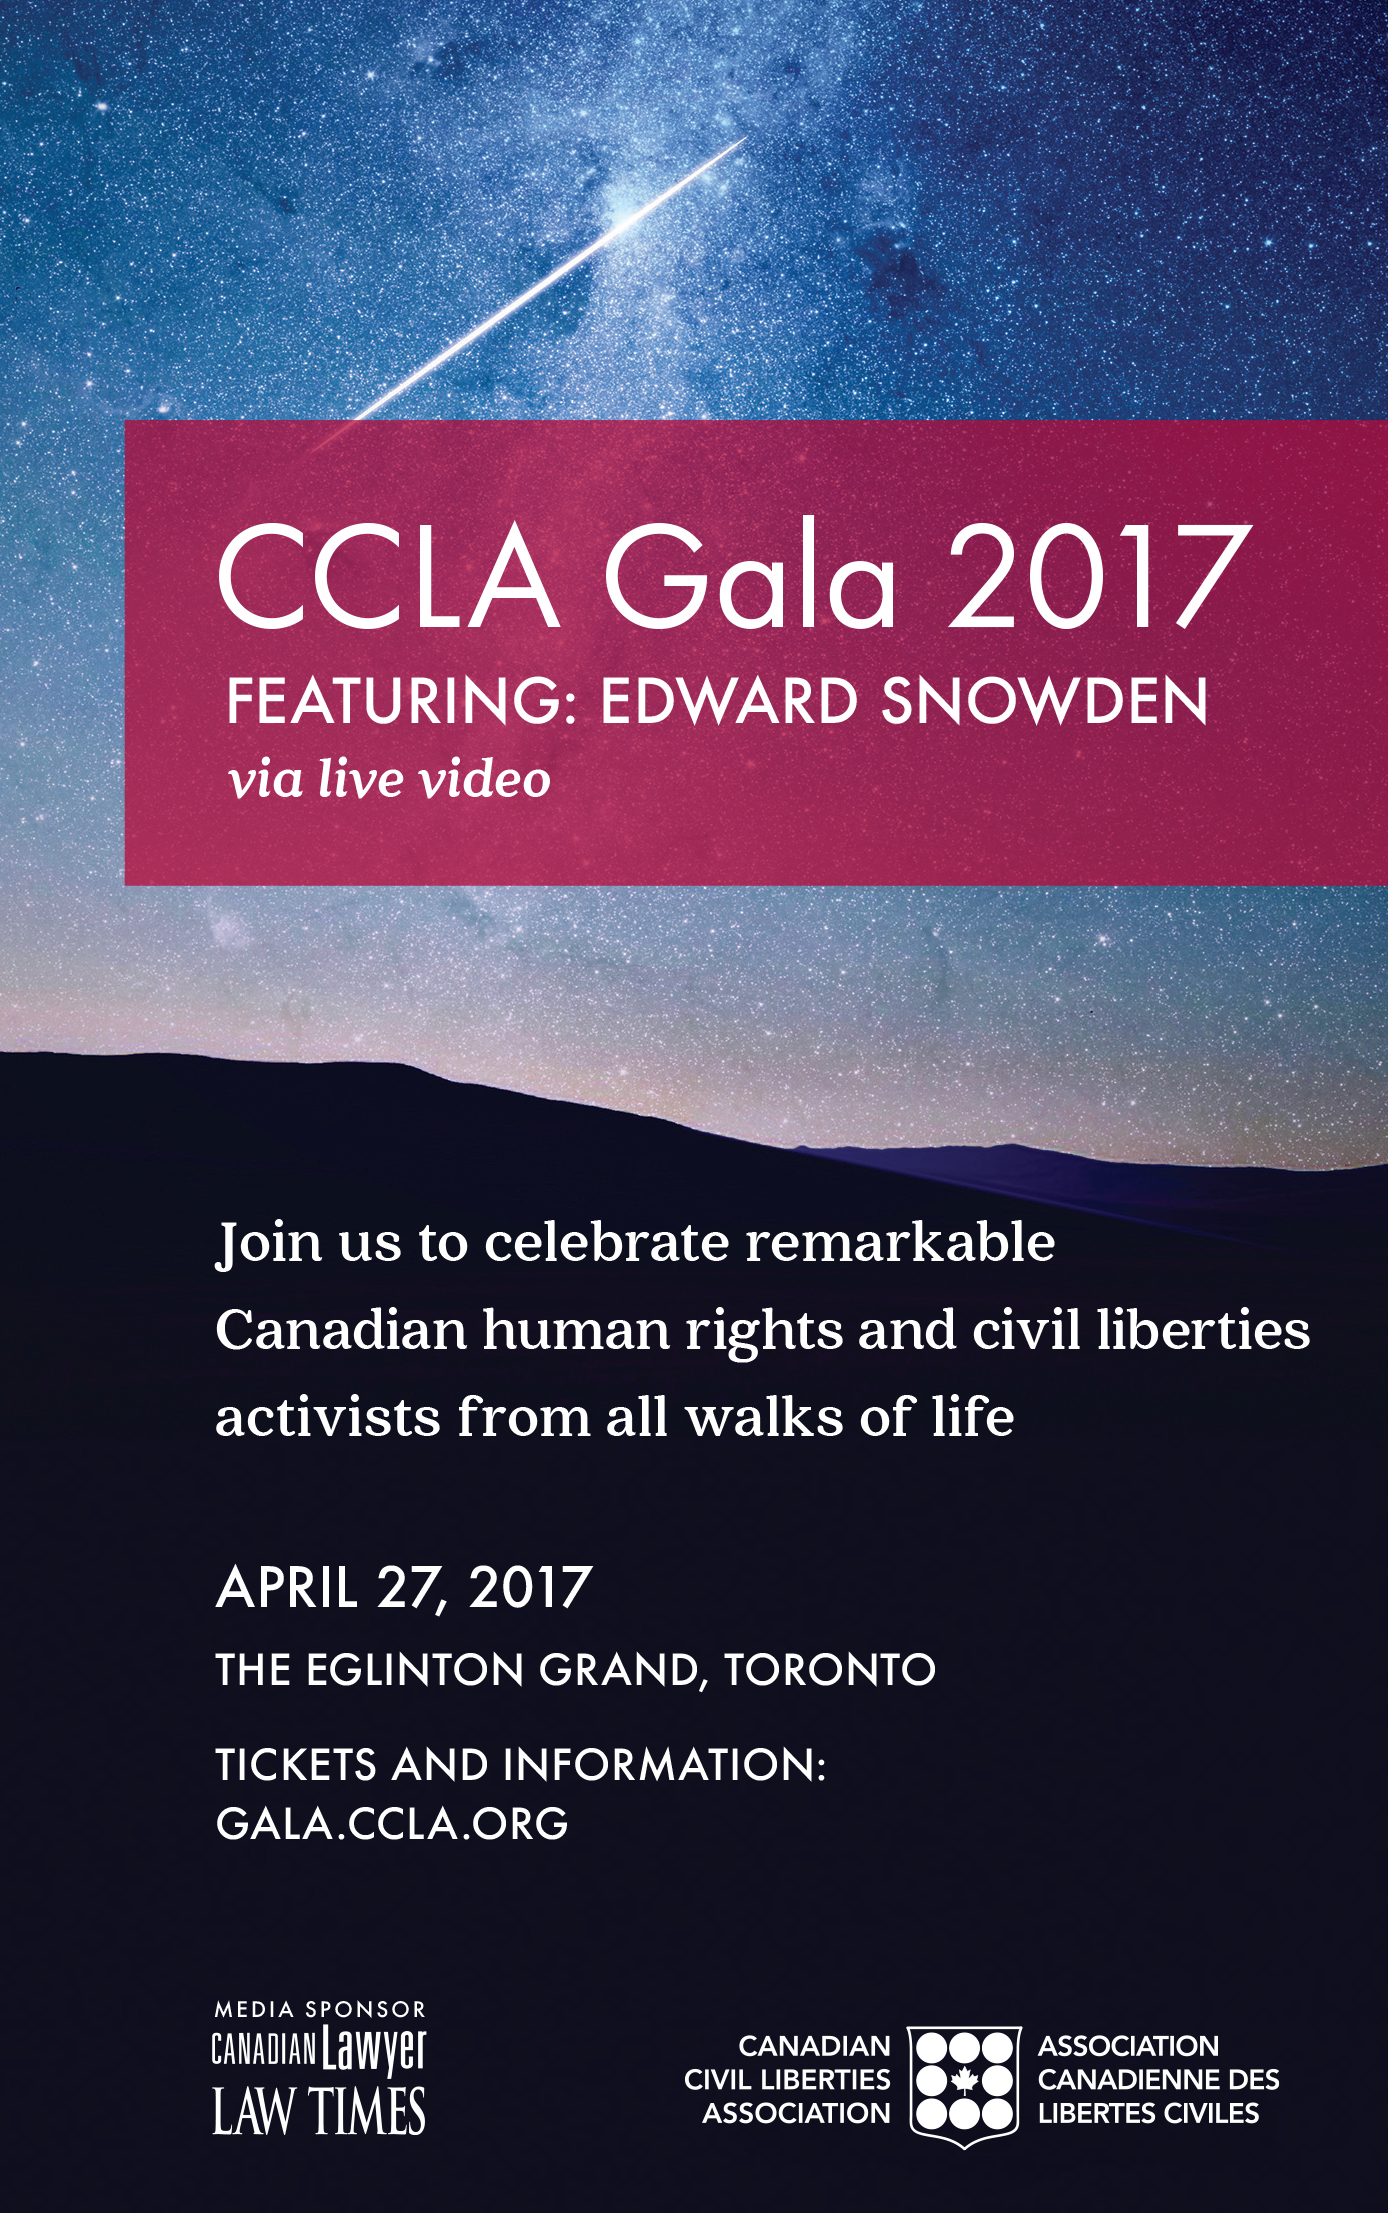 CCLA-GALA-2017-CanadianLawyer-1_2pageisland.jpg